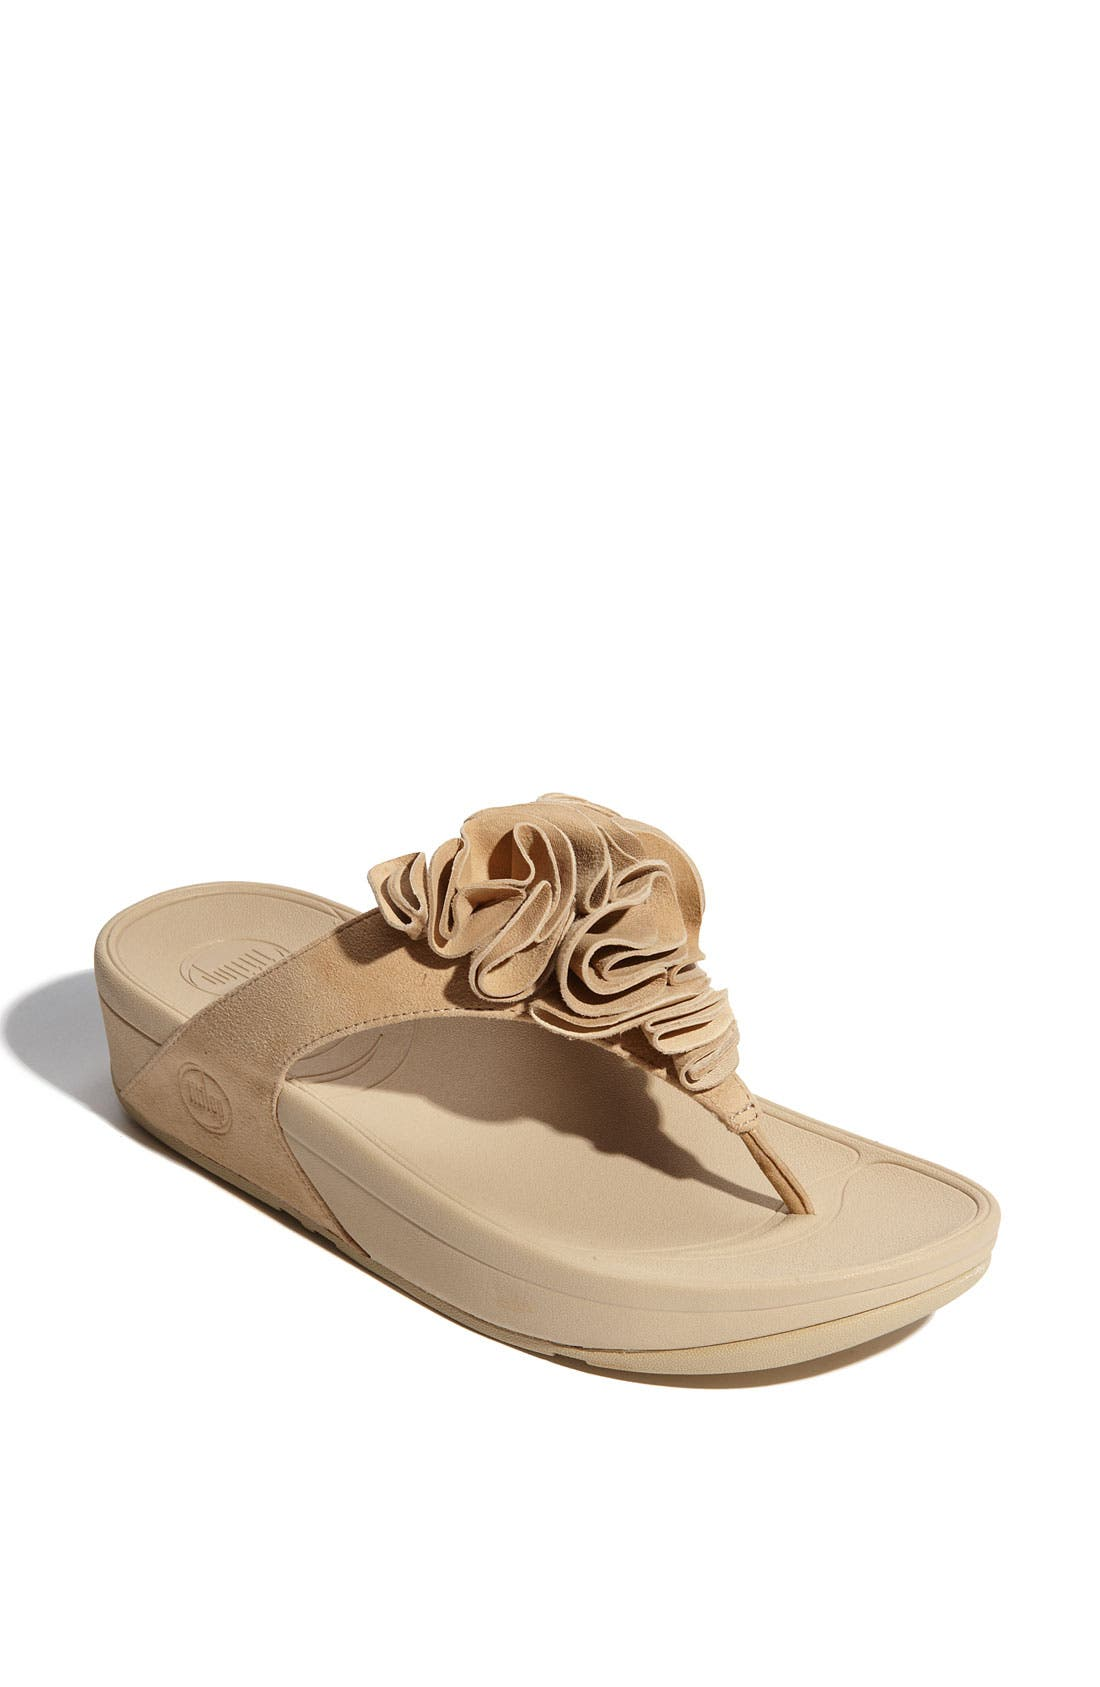 Alternate Image 1 Selected - FitFlop 'Frou™' Sandal